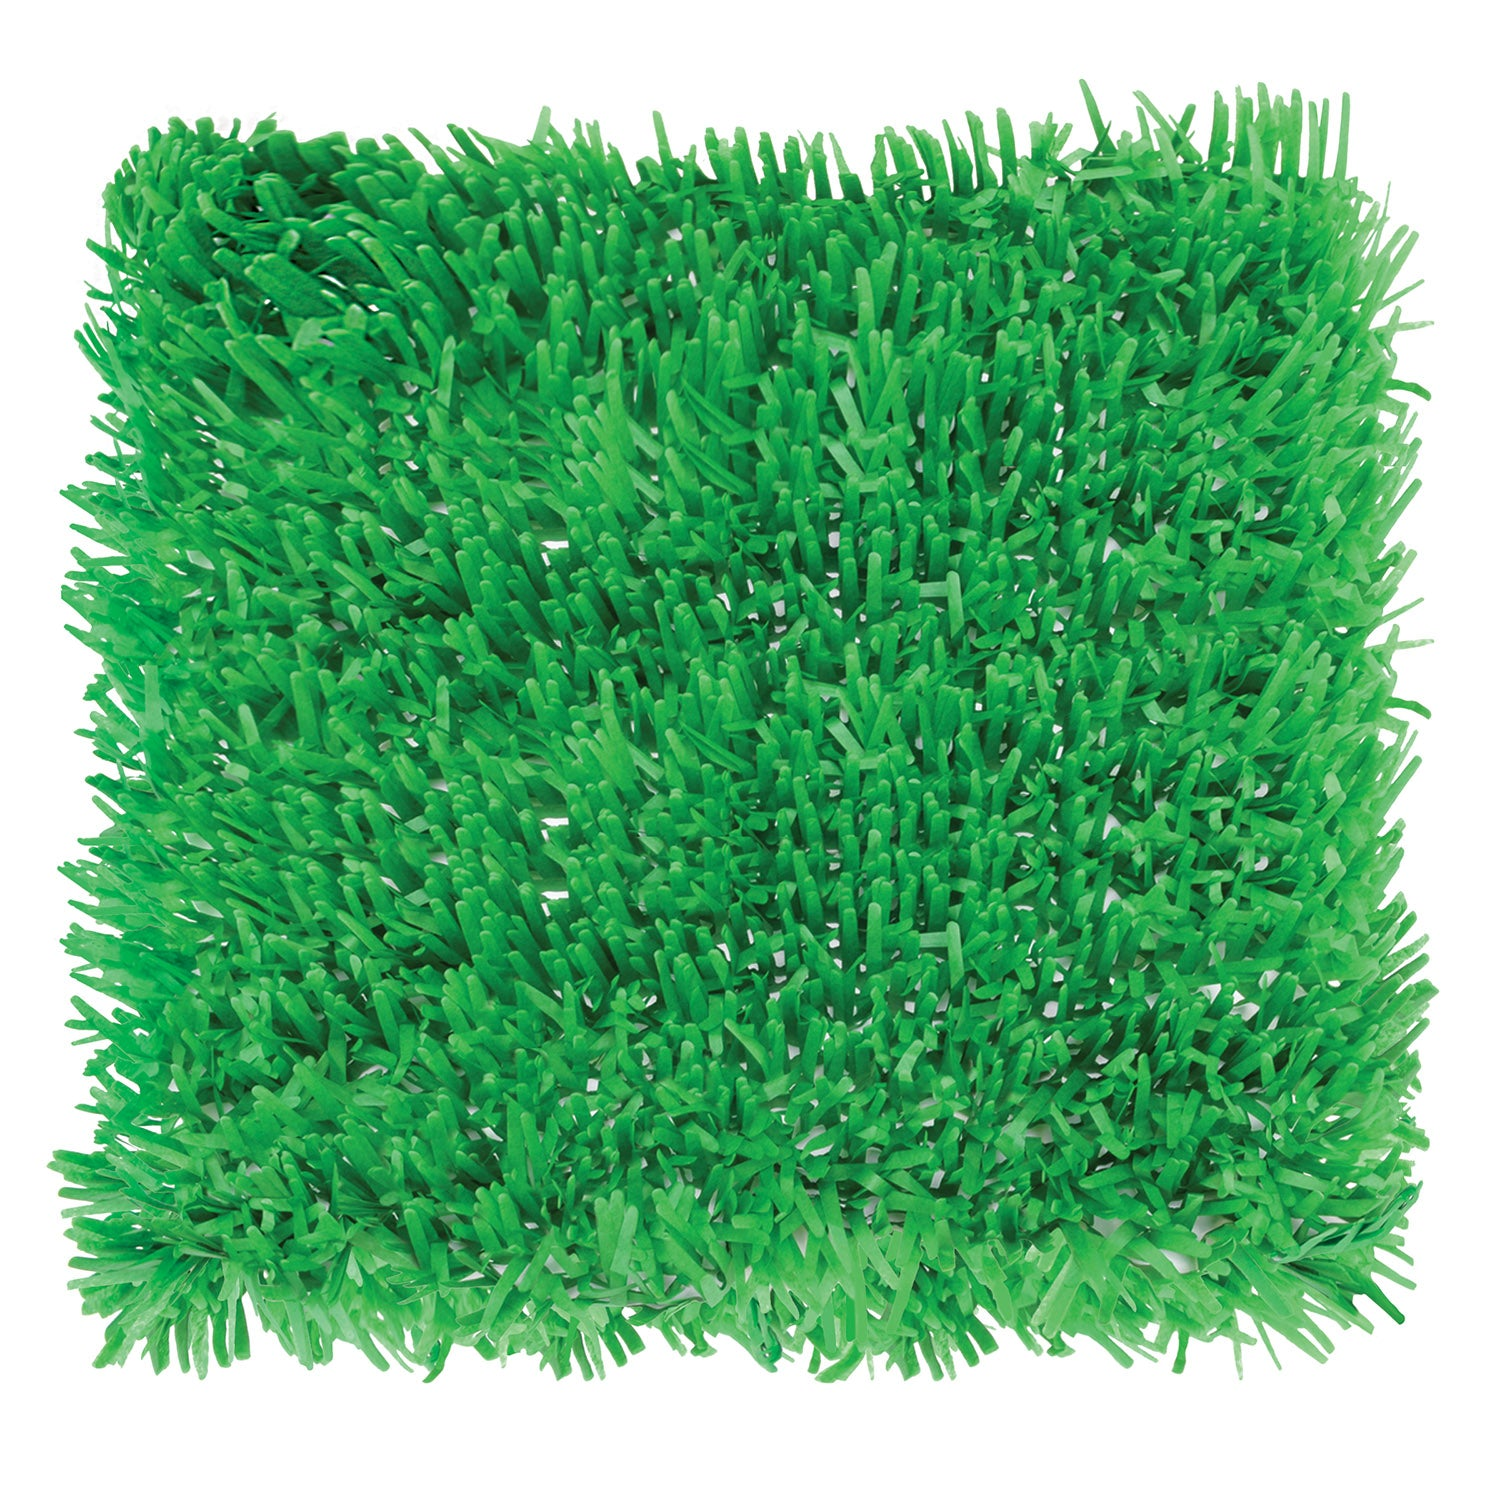 Packaged Tissue Grass Mats (2/Pkg) by Beistle - Easter Theme Decorations